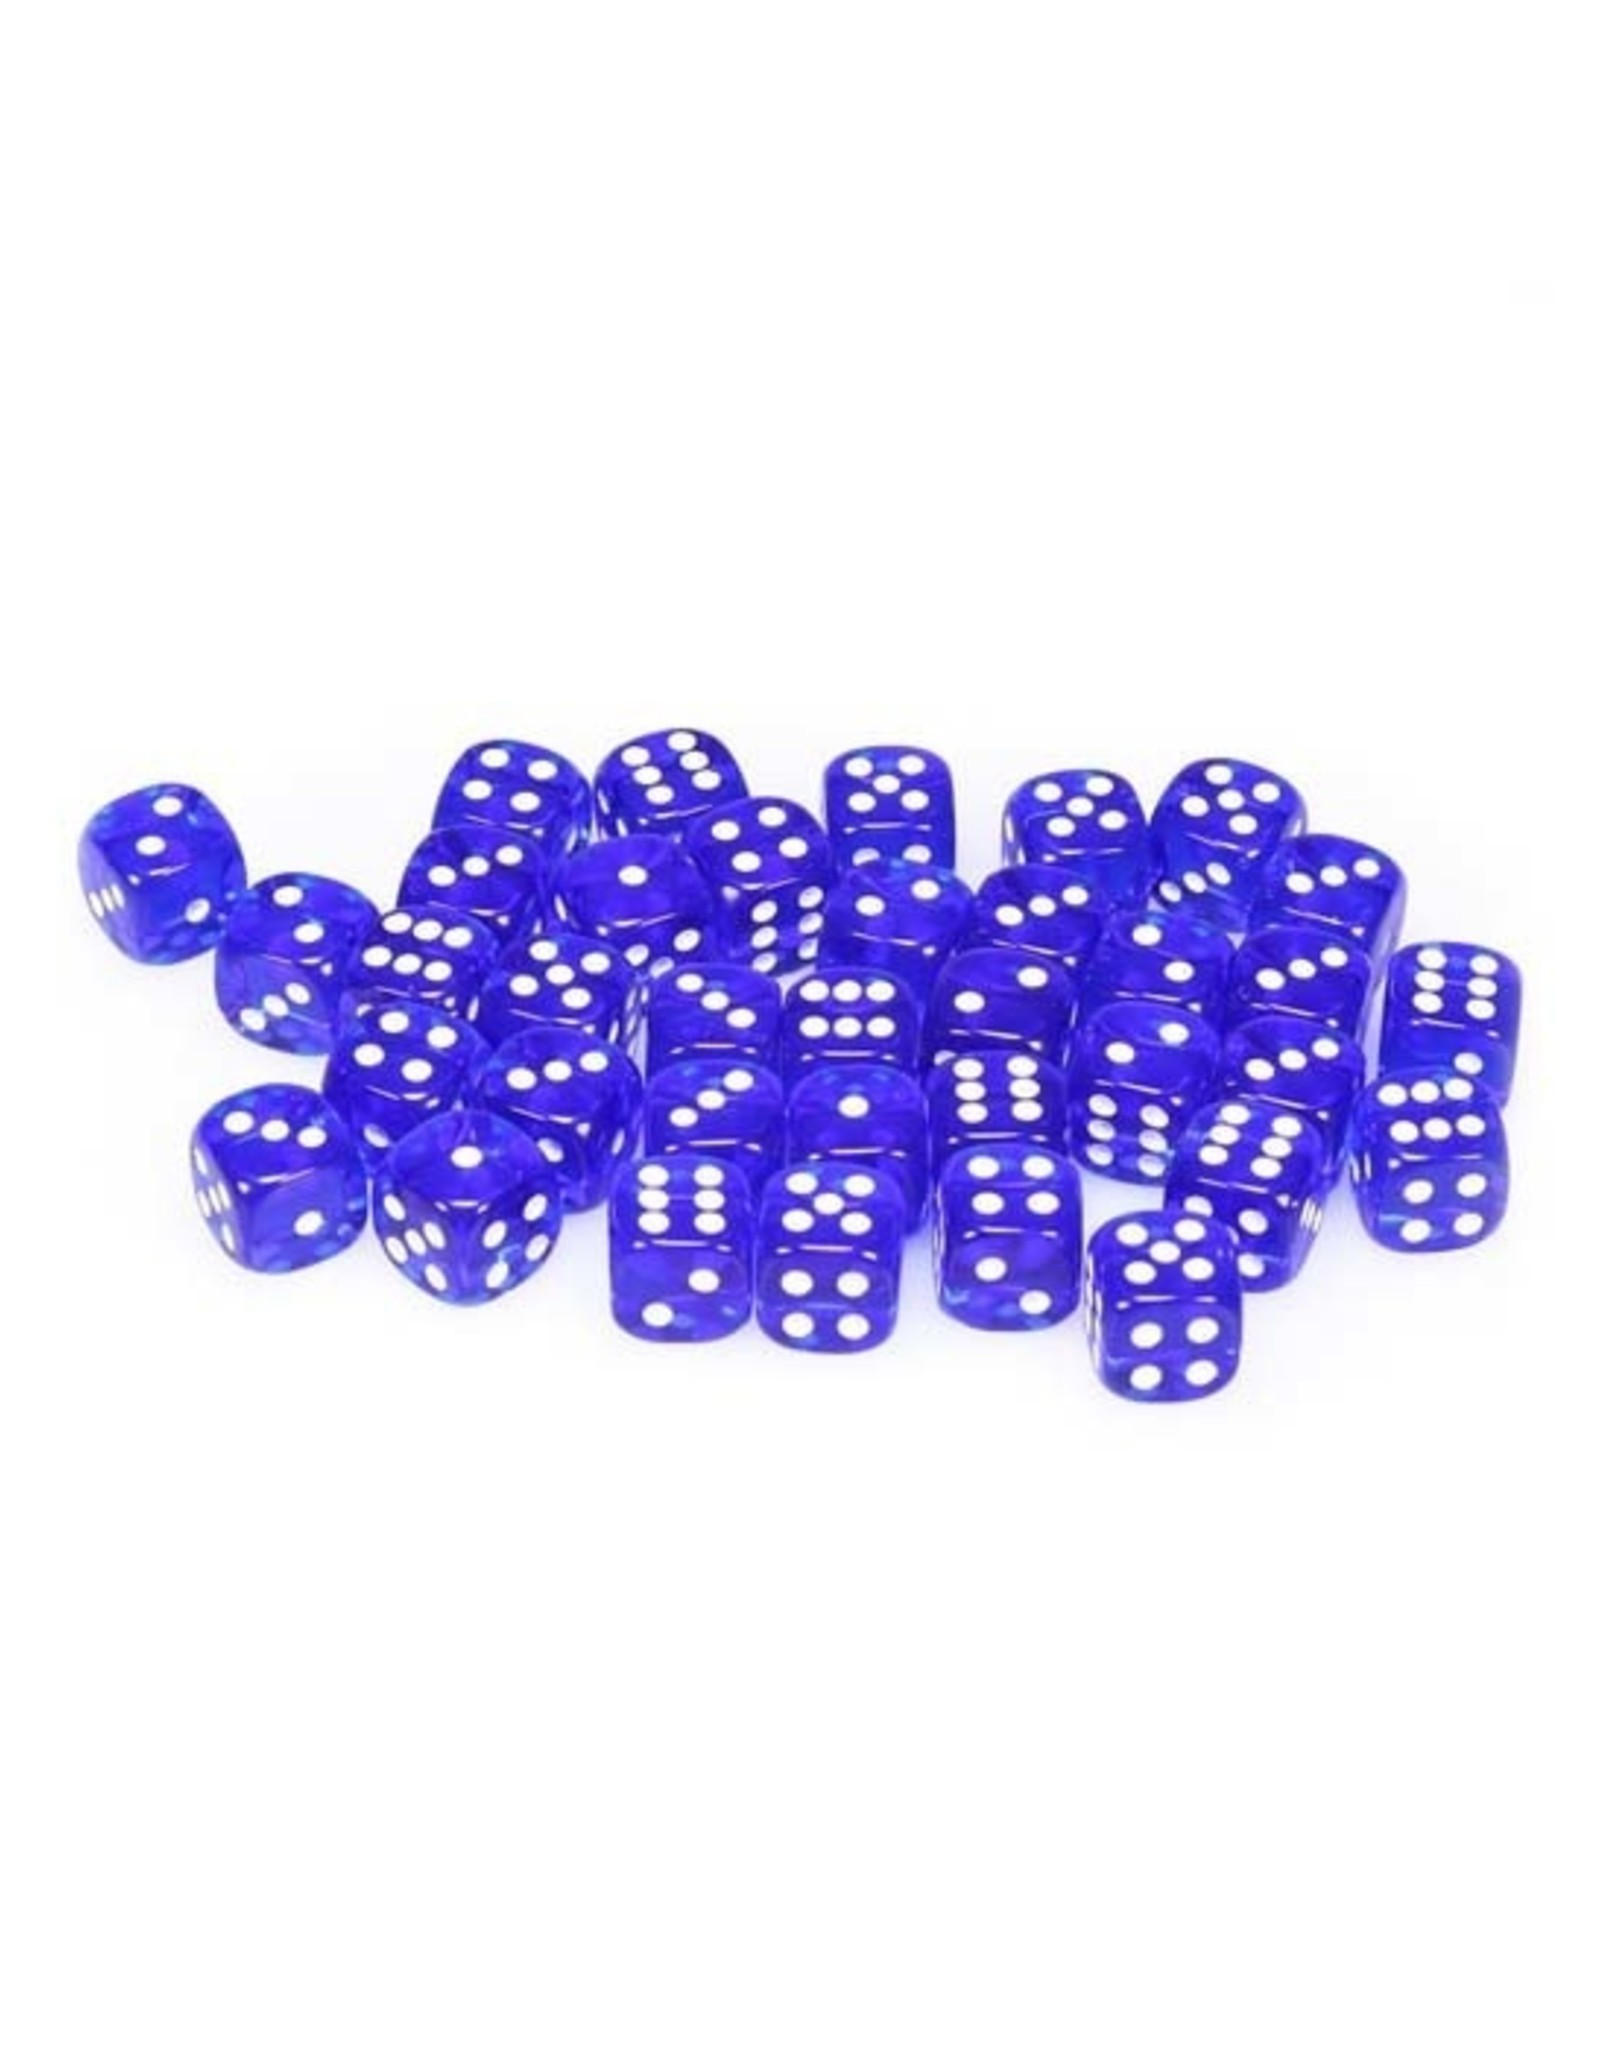 Chessex Chessex: 12mm D6 - Translucent - Blue w/ White